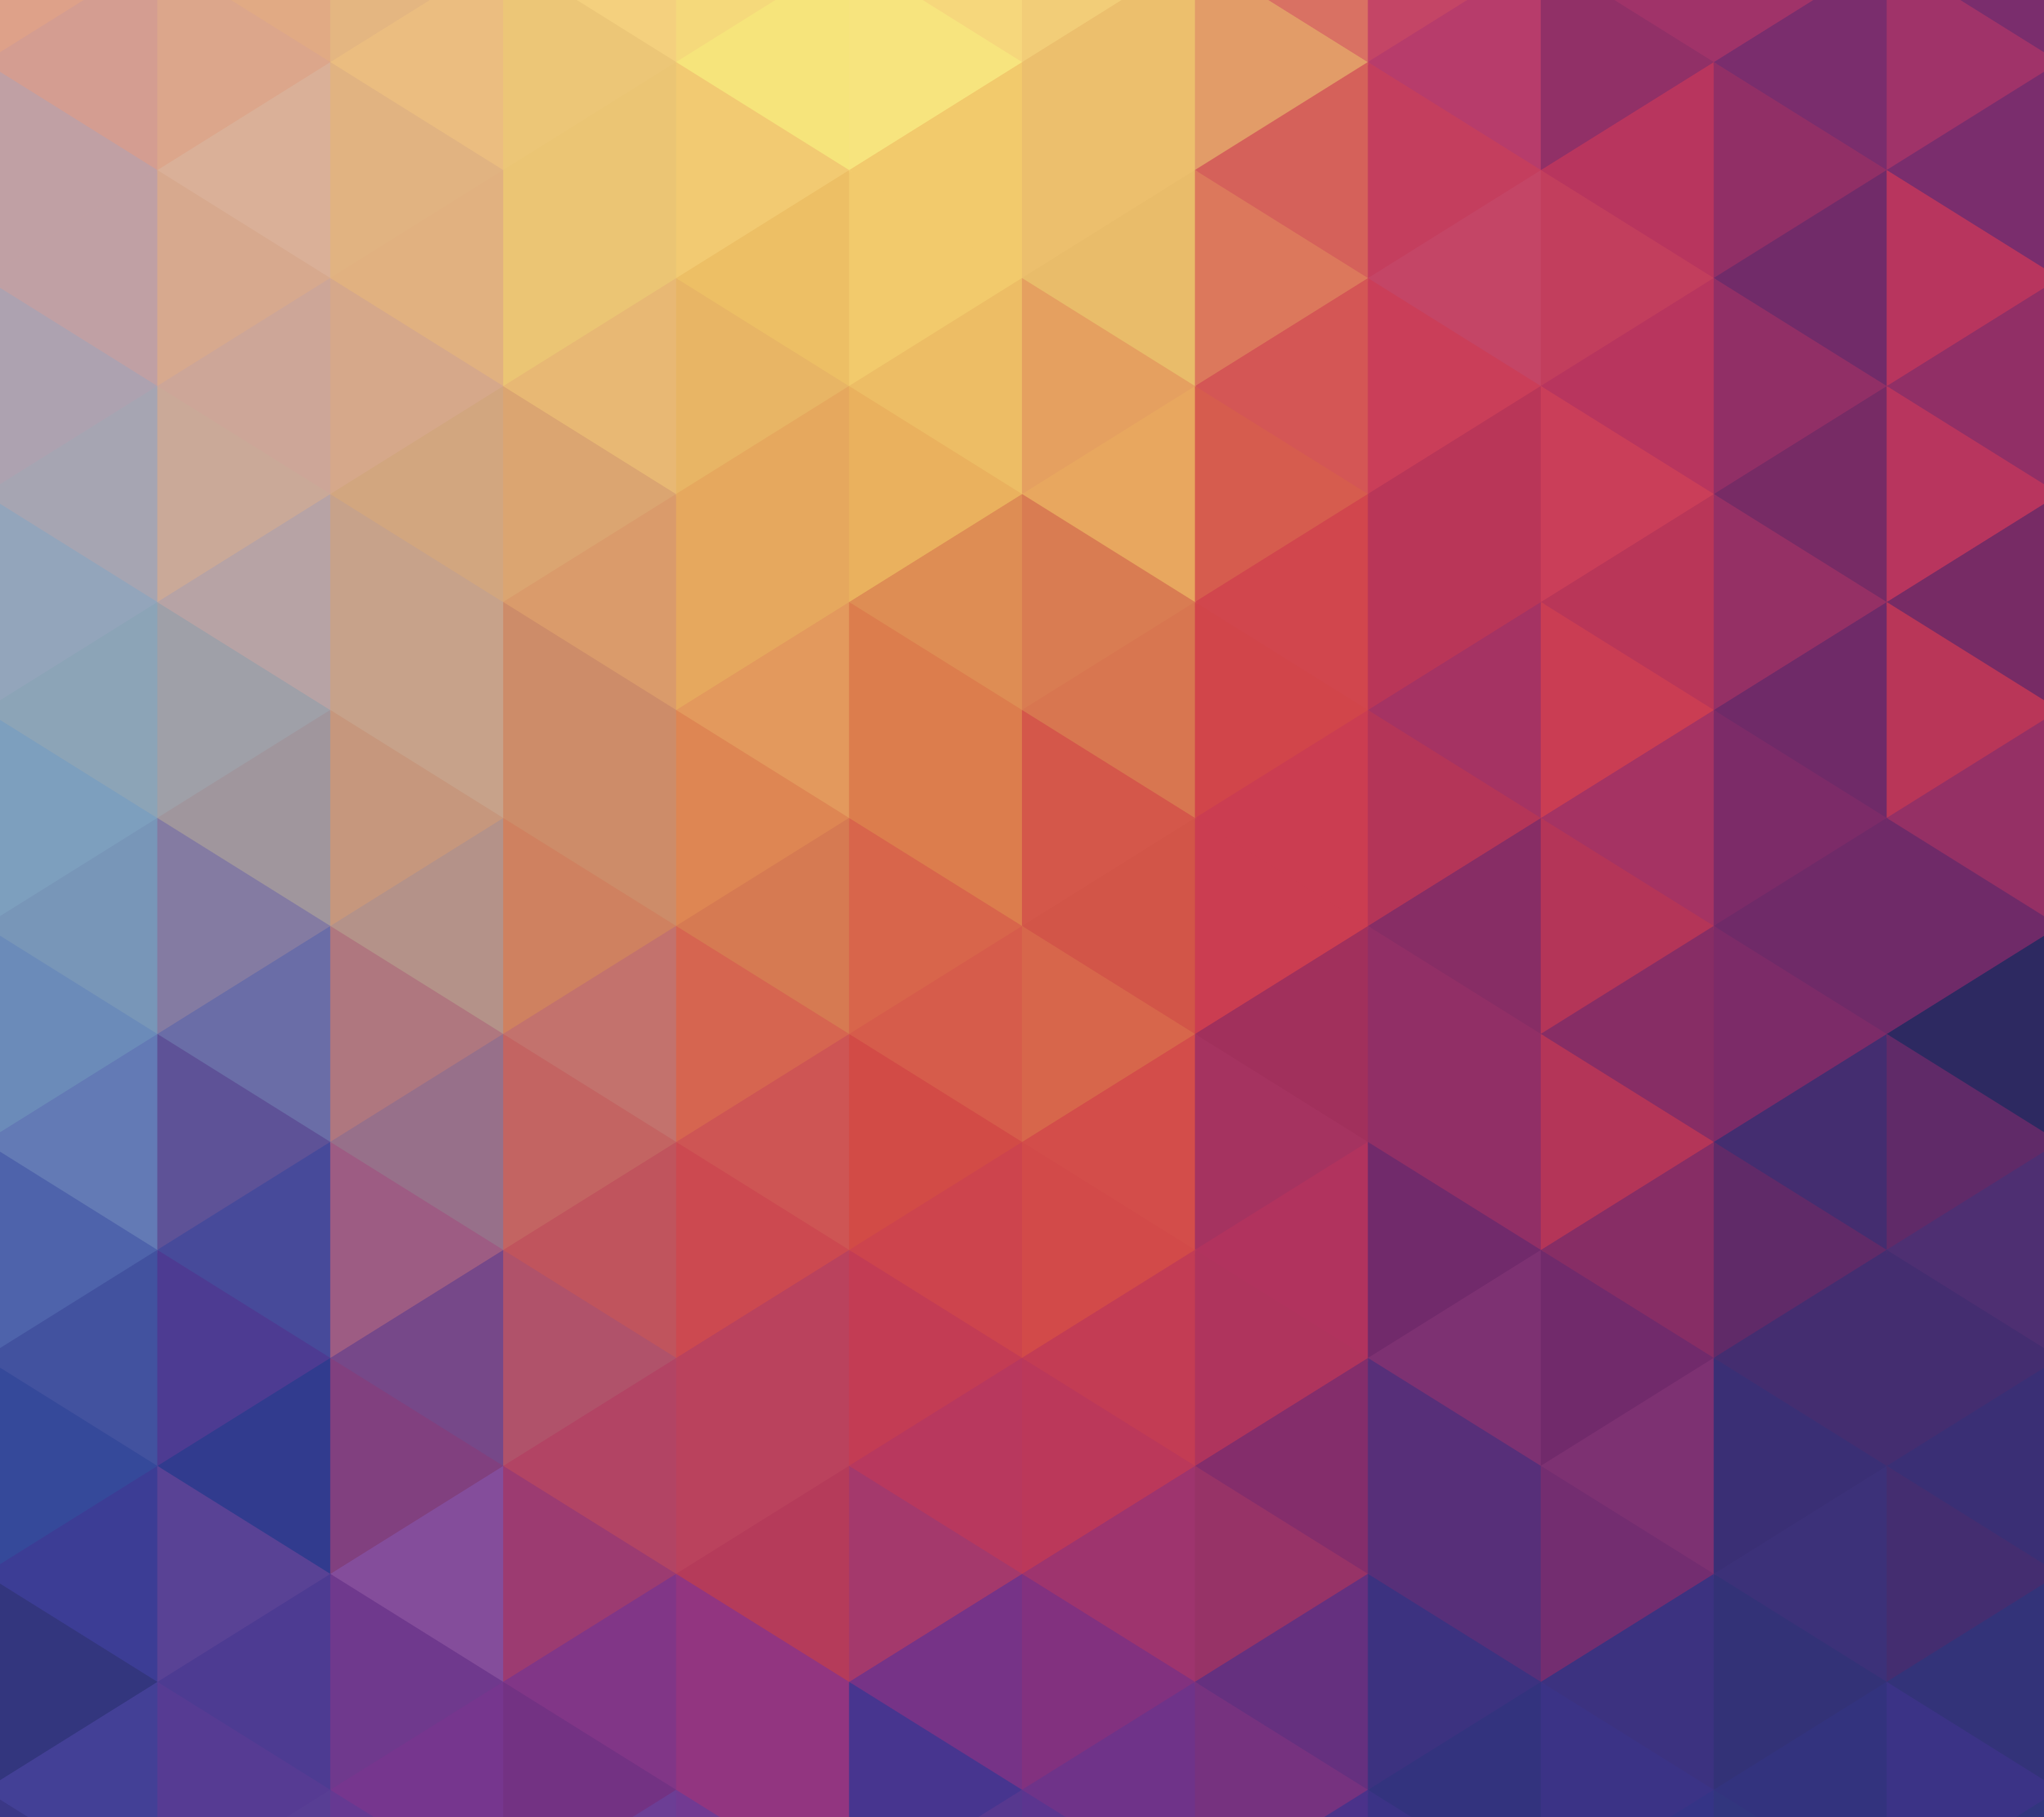 Download these LG G3 wallpapers for your phone 2880x2560